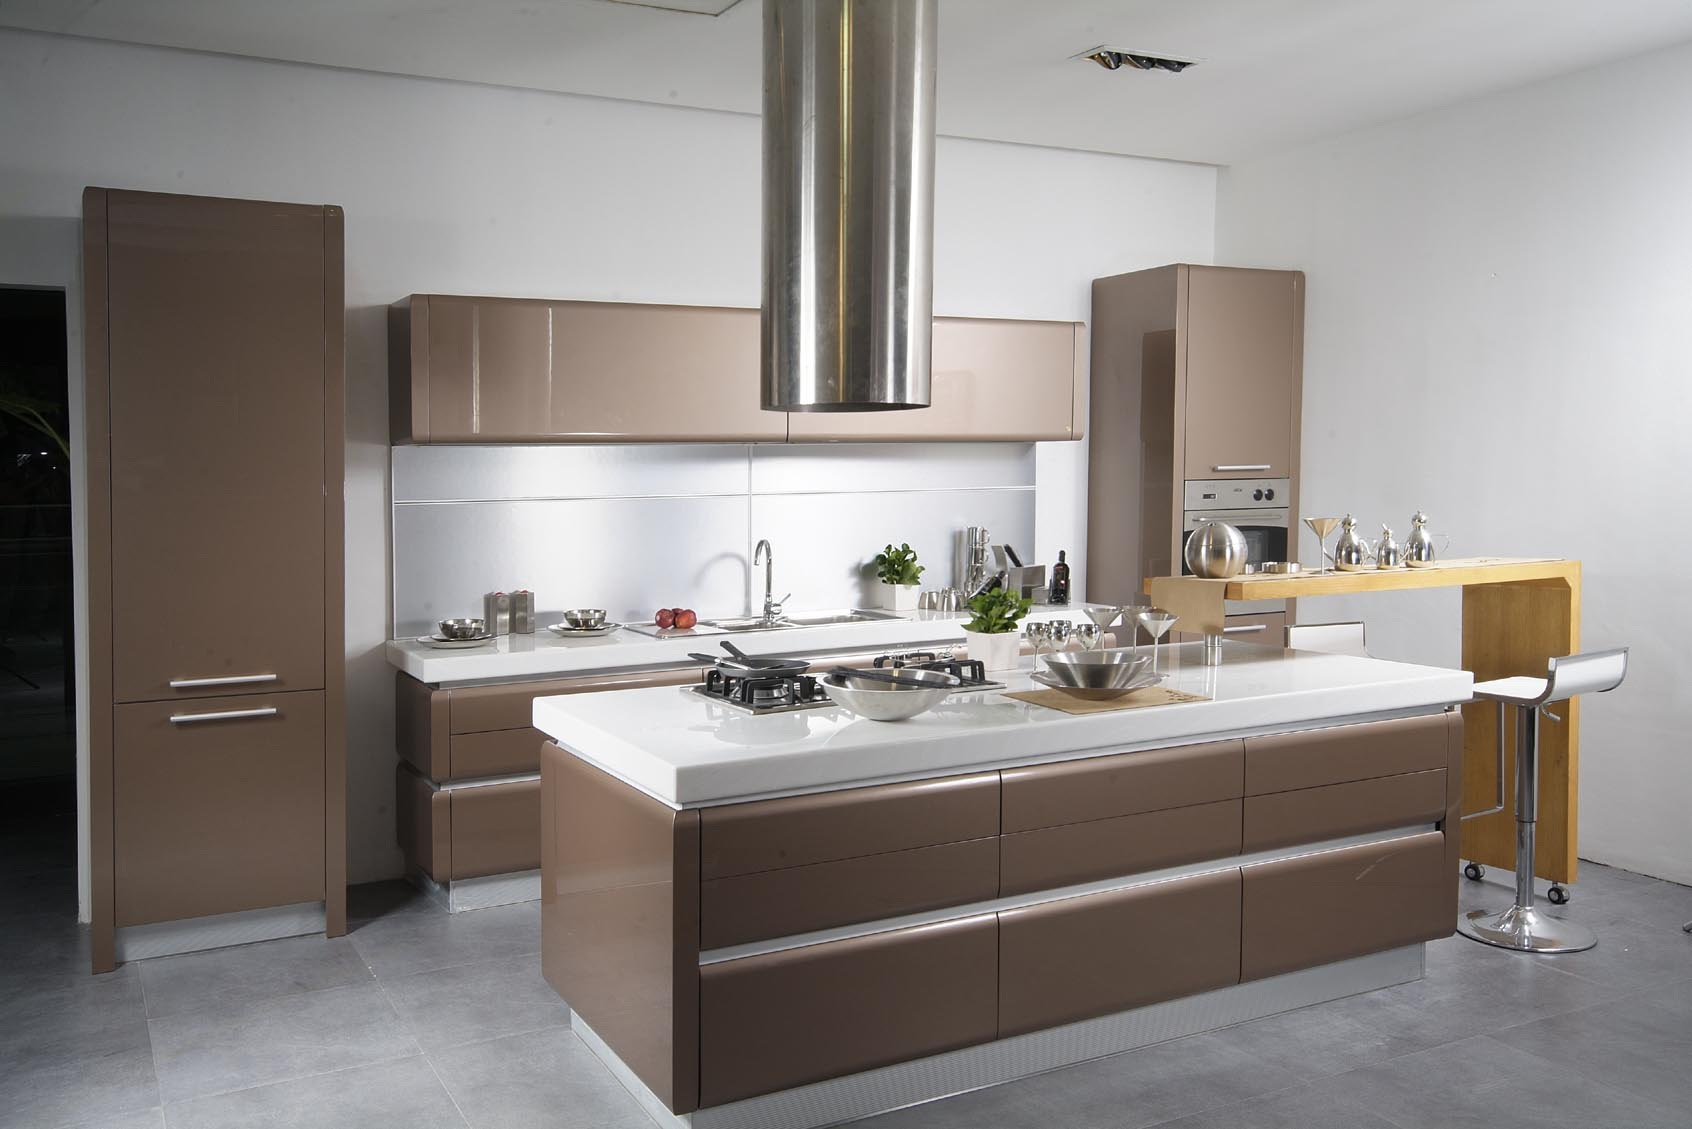 extraordinary-kitchen-designs-for-small-modern-kitchen-with-island-and-bar-in-brown-color-feats-wood-cabinets